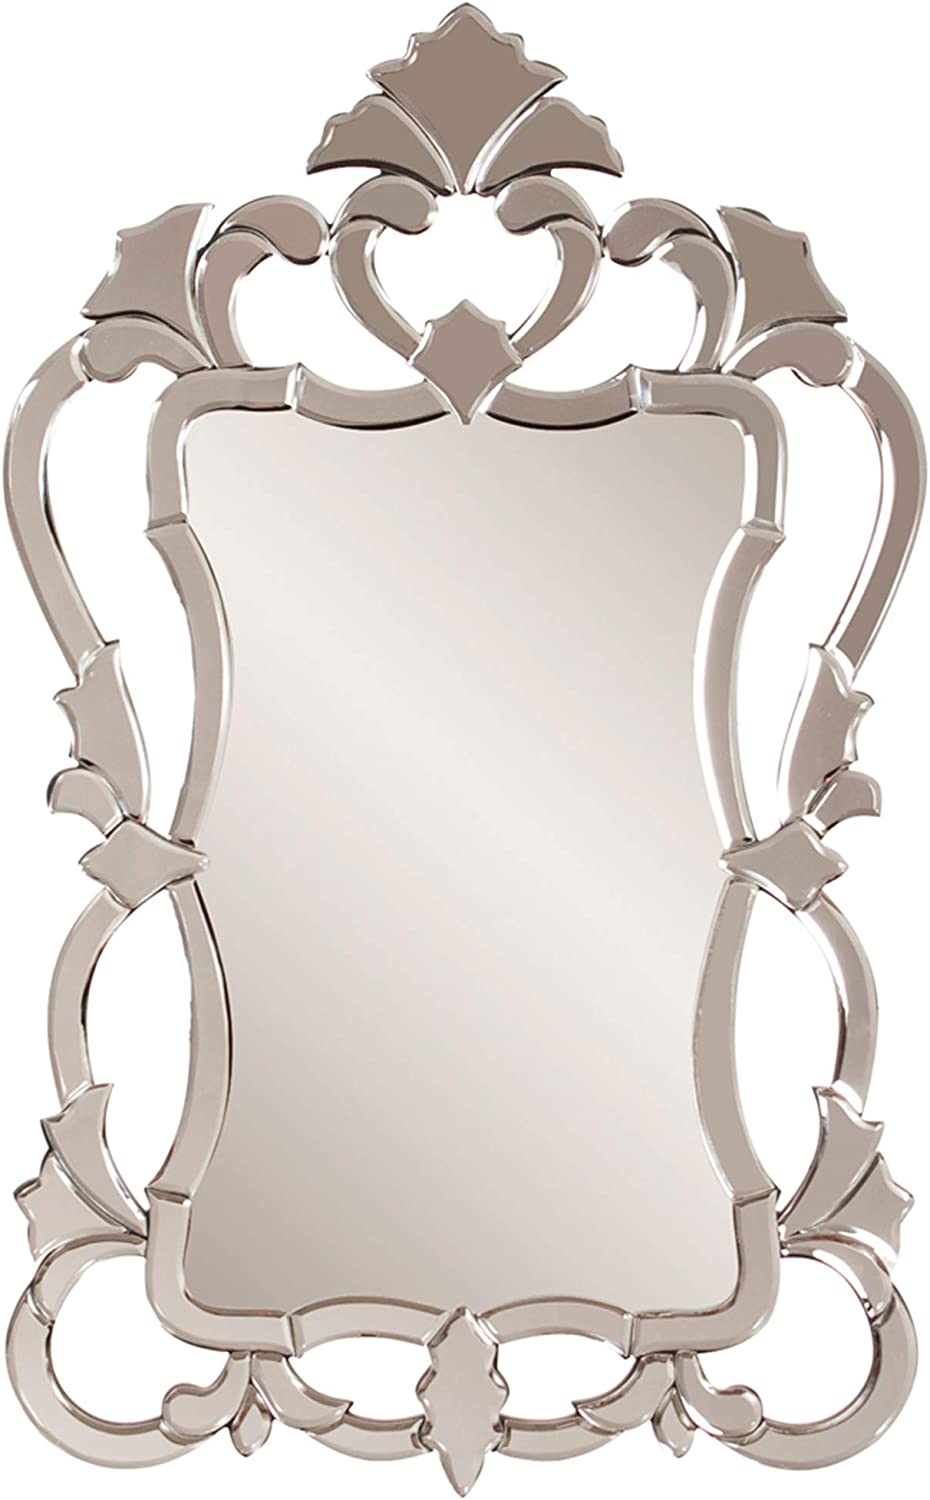 Howard Elliott Contessa Rectangular Wall Hanging Mirrore Mirror Outlet ☆ Free Animer and price revision Shipping